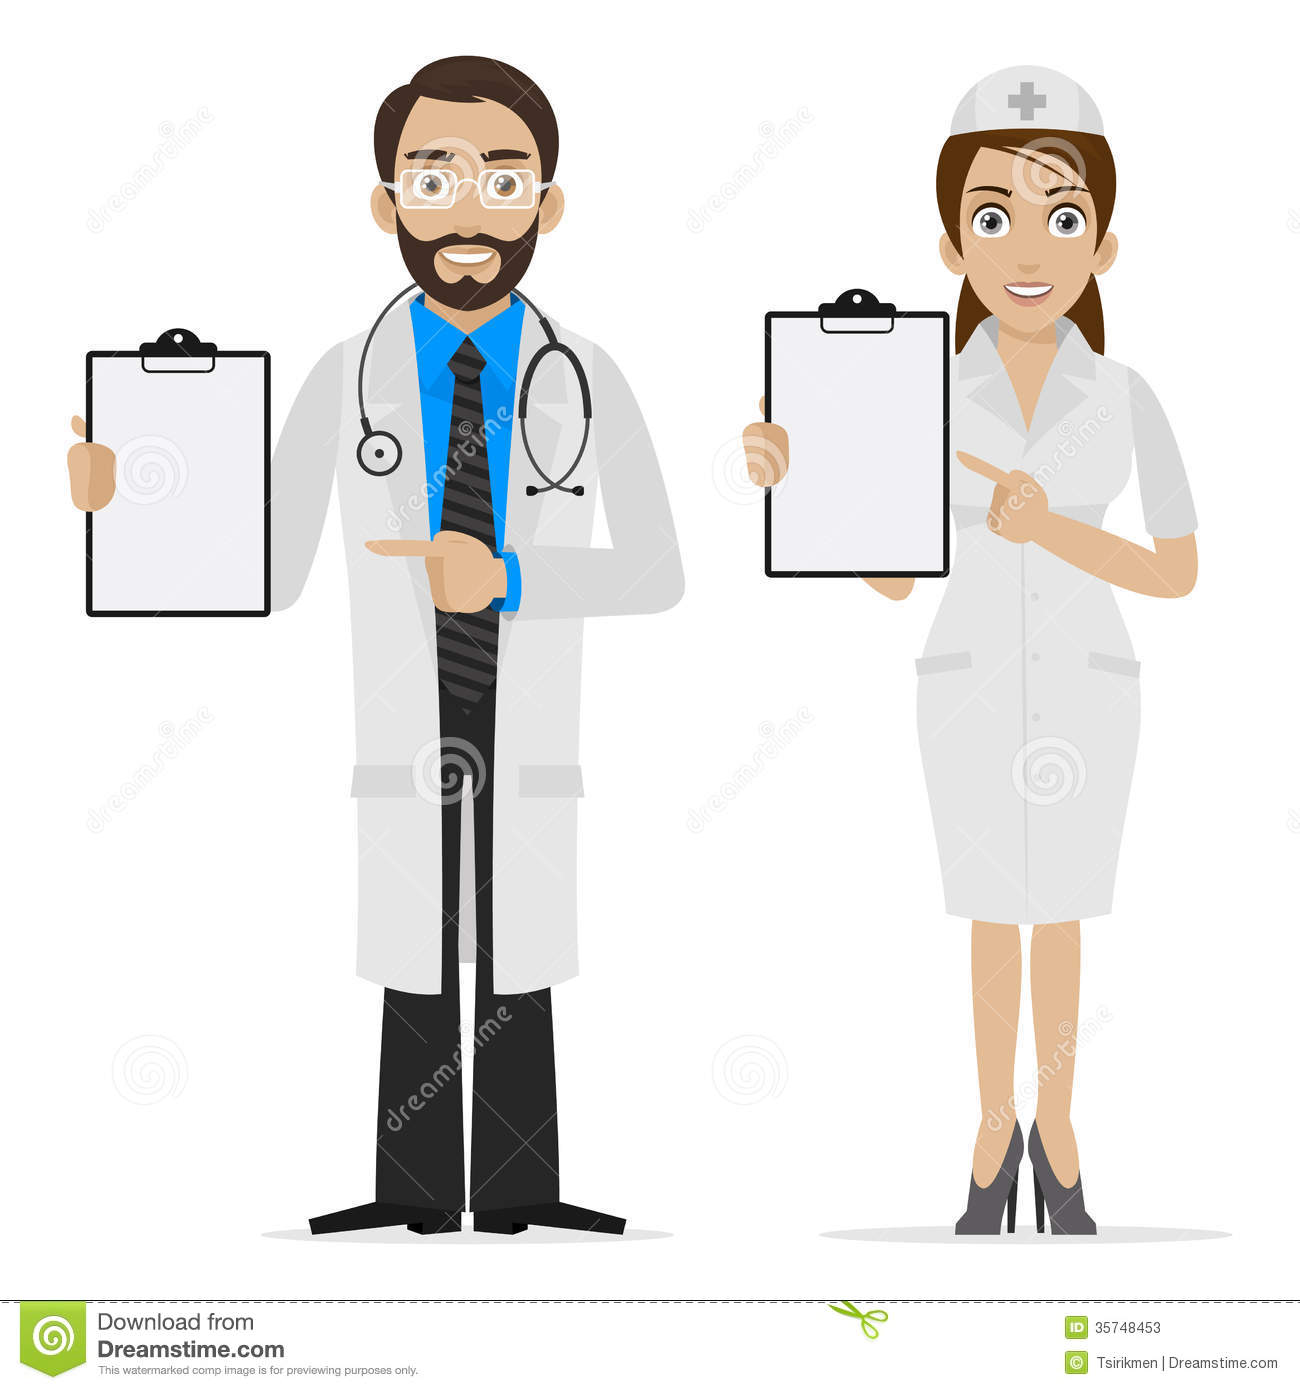 Doctor and nurse clipart 1 » Clipart Station.